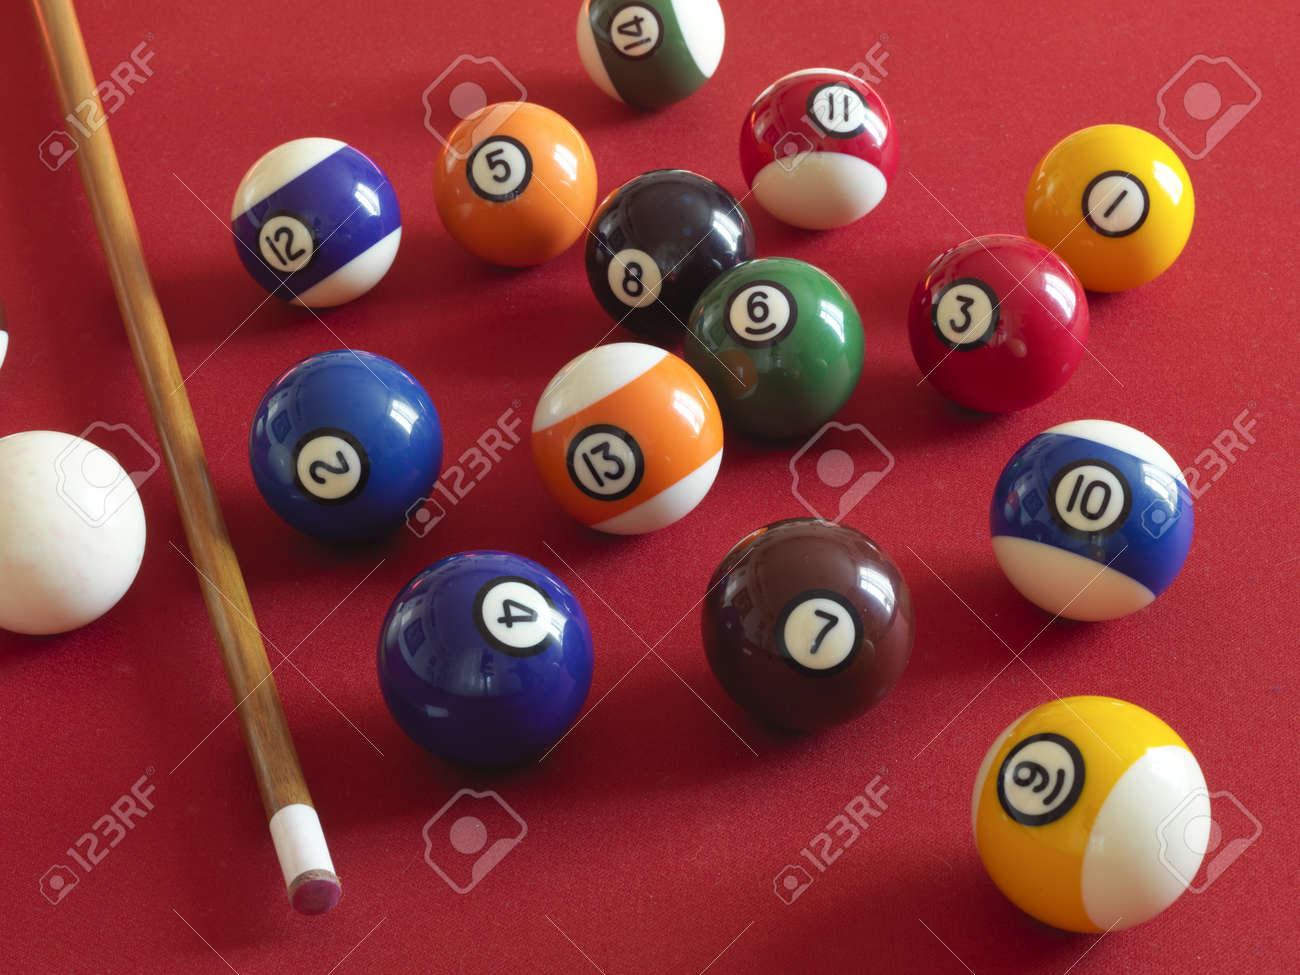 Numbered Balls On A Billiard Table With The Red Carpet Stock Photo   8921598